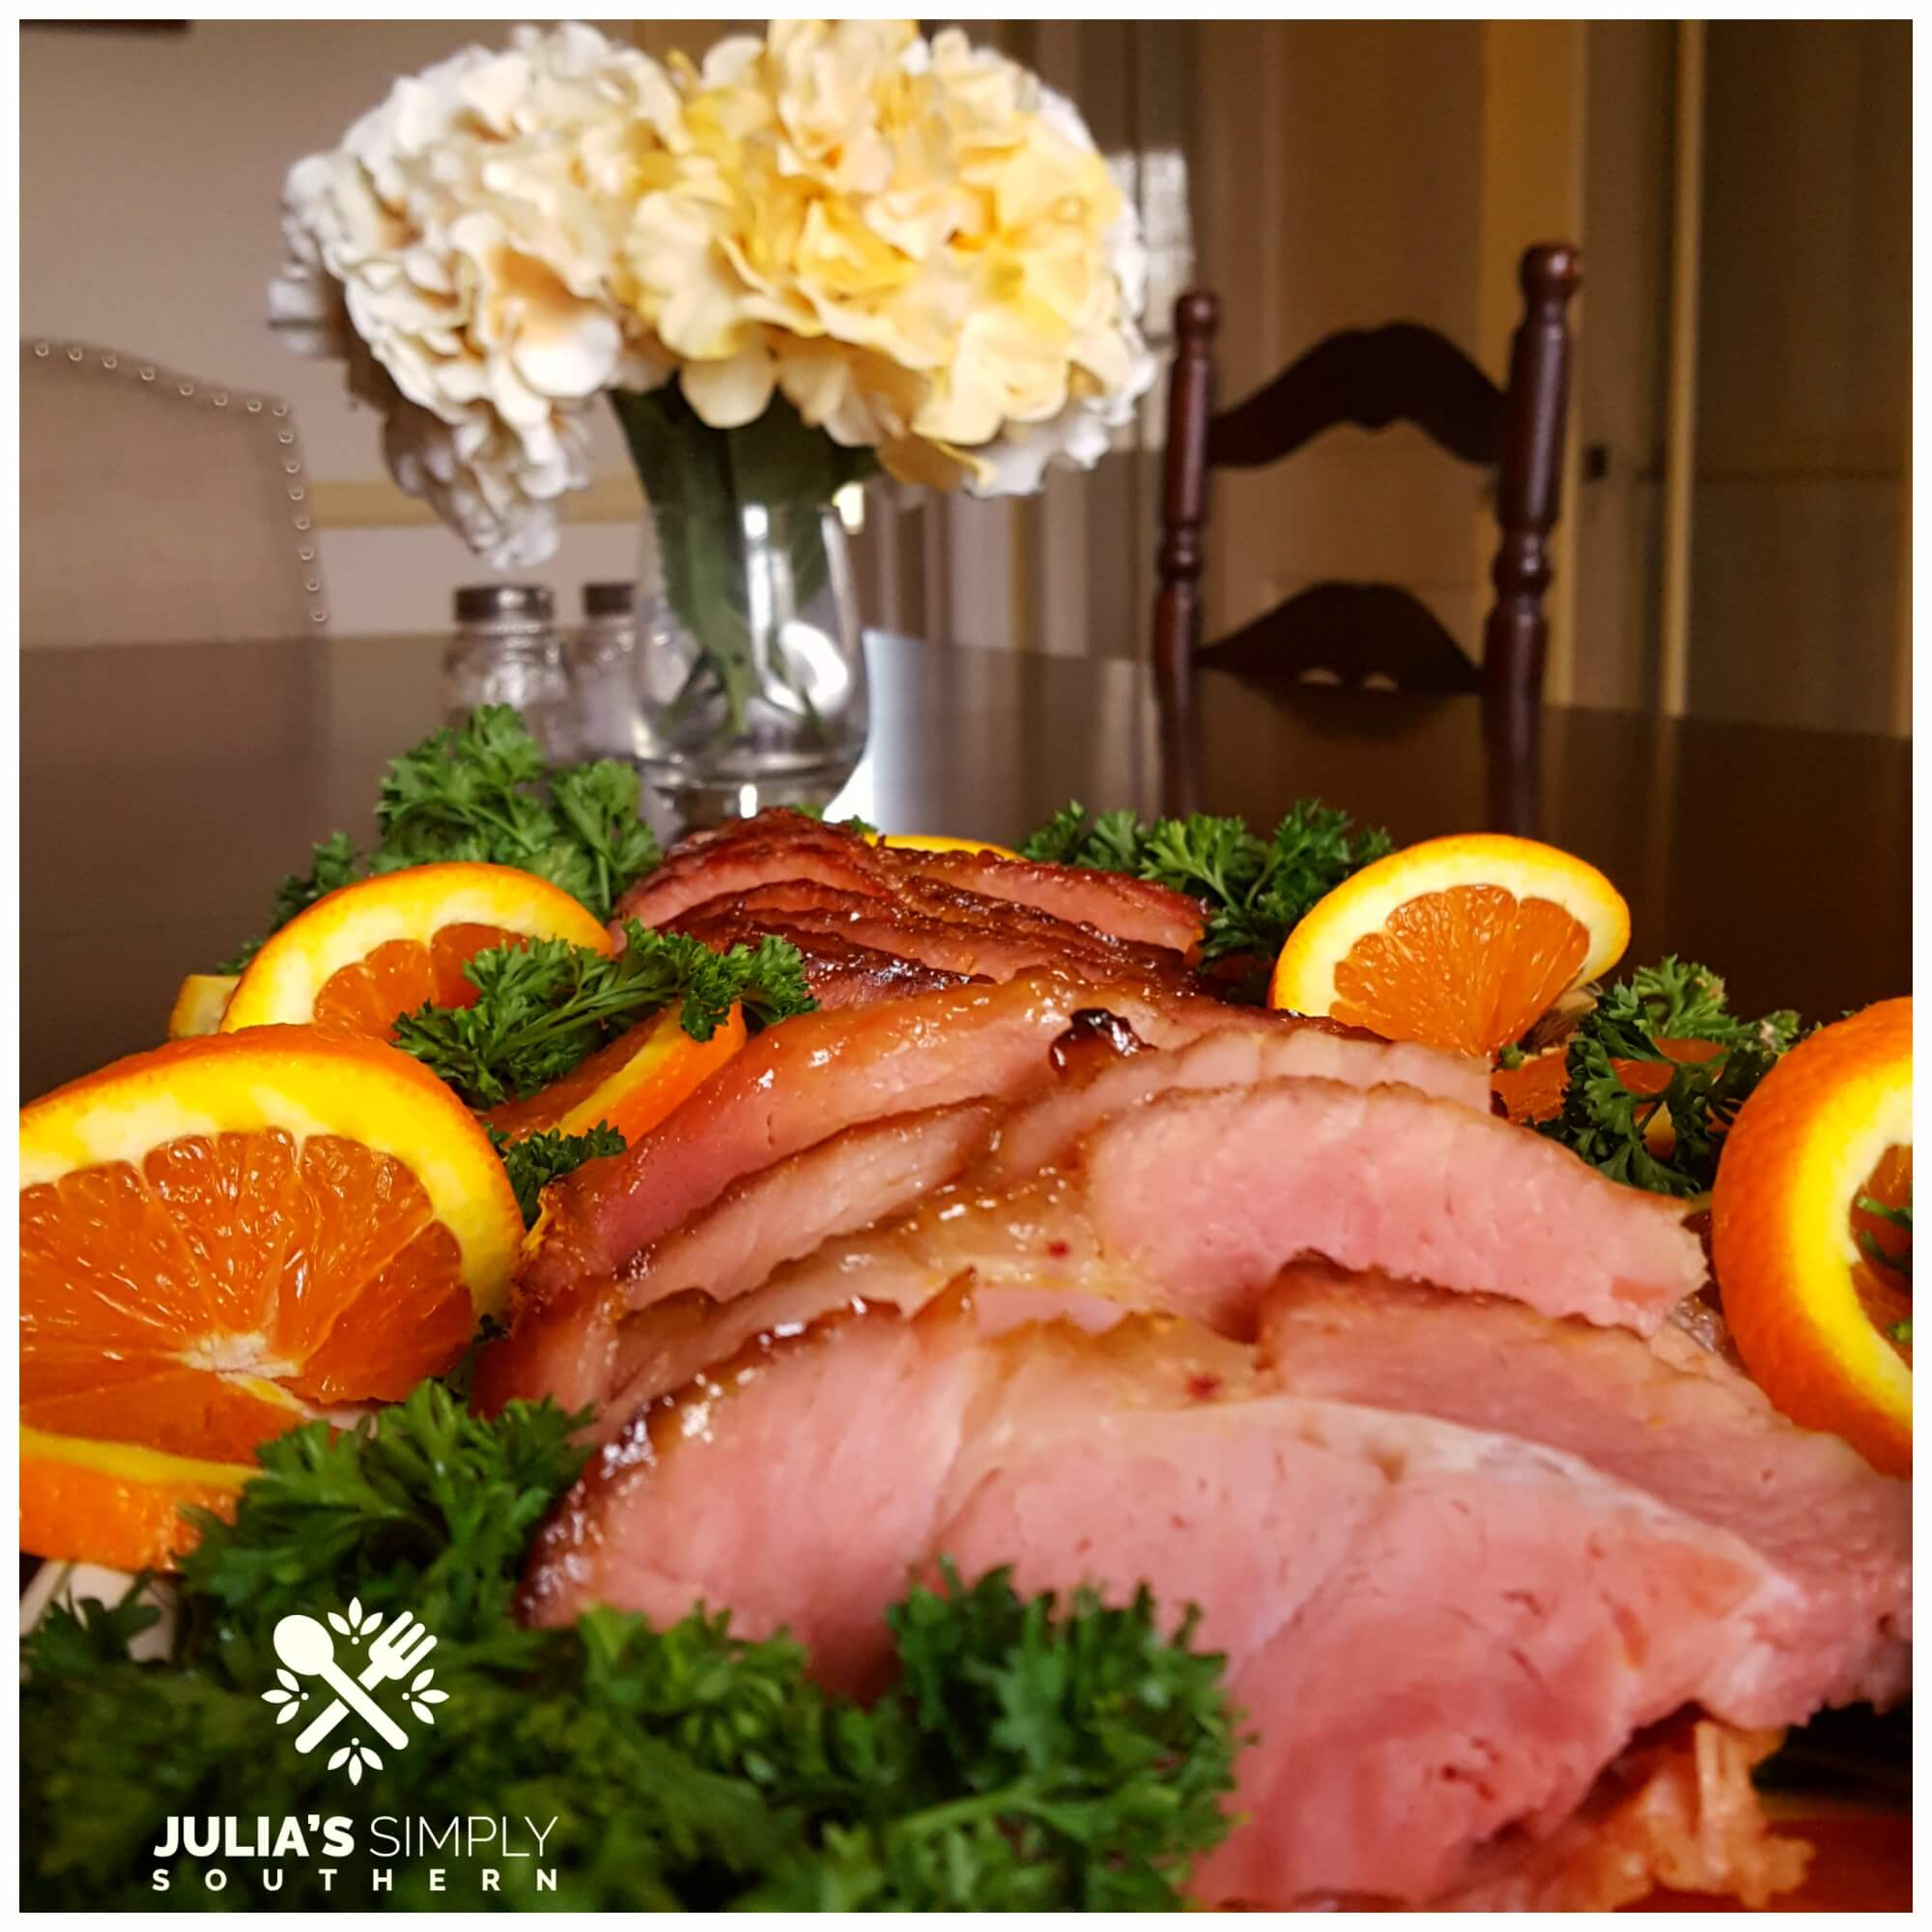 Glazed Ham with a Honey Orange Glaze on a dining table with flowers in the background.